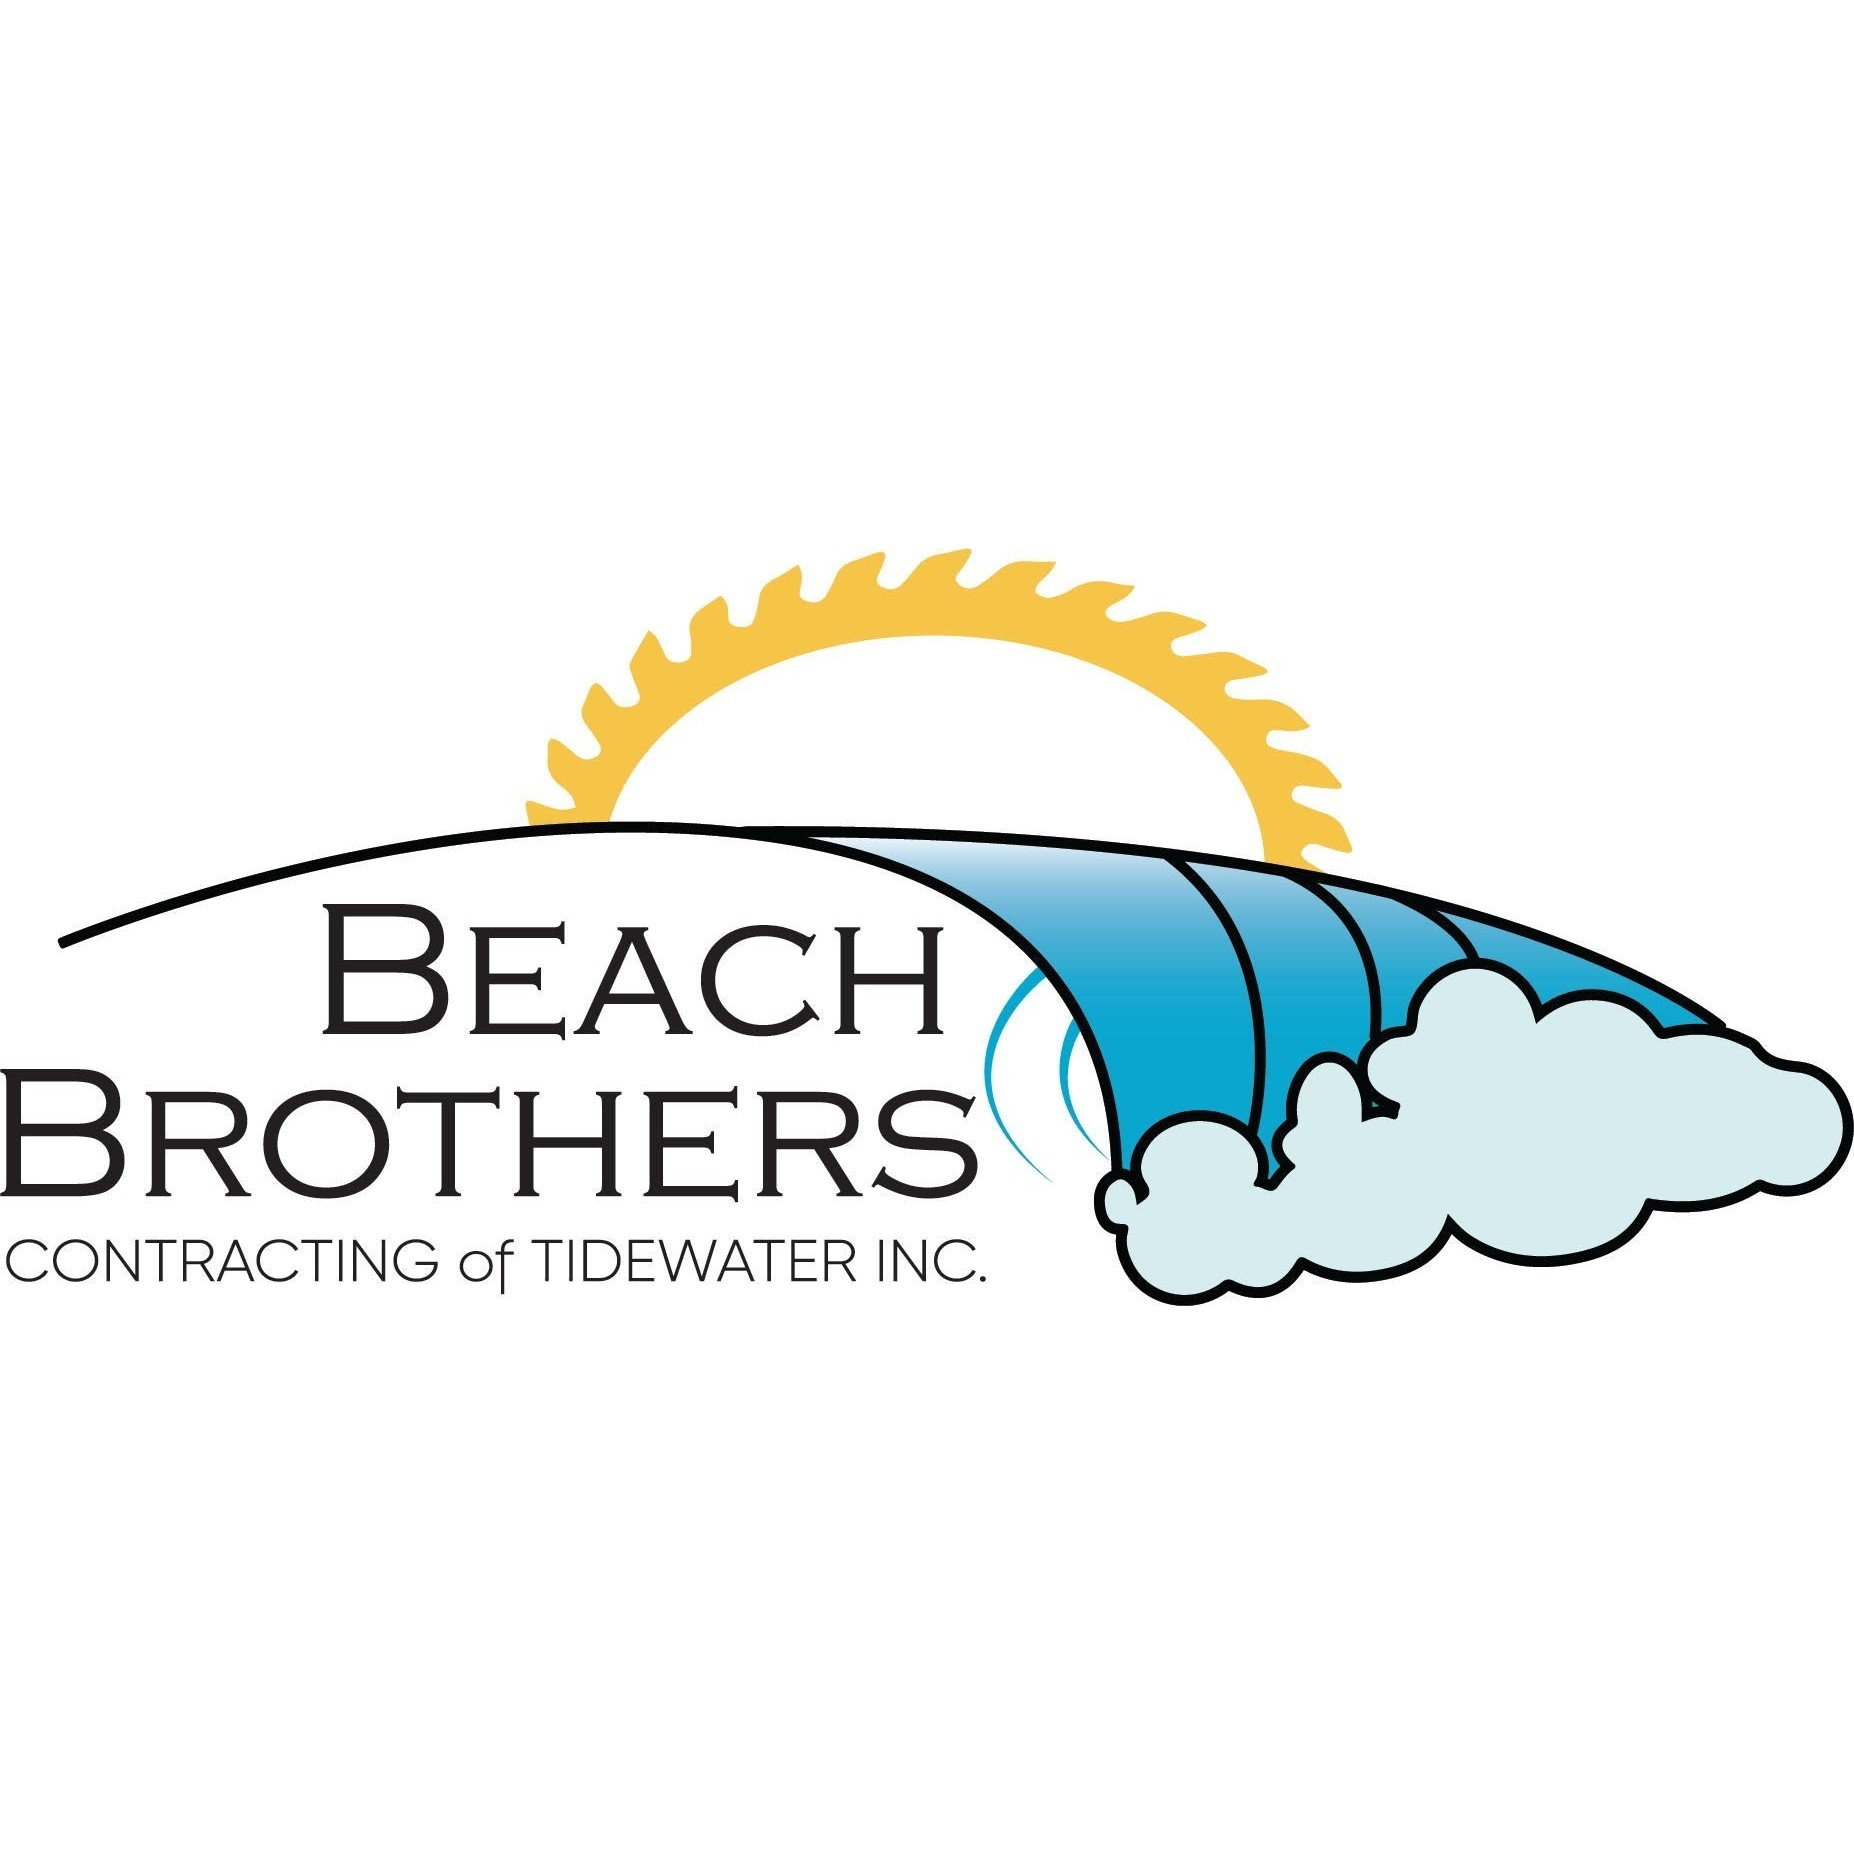 Beach Brothers Contracting of Tidewater, Inc.